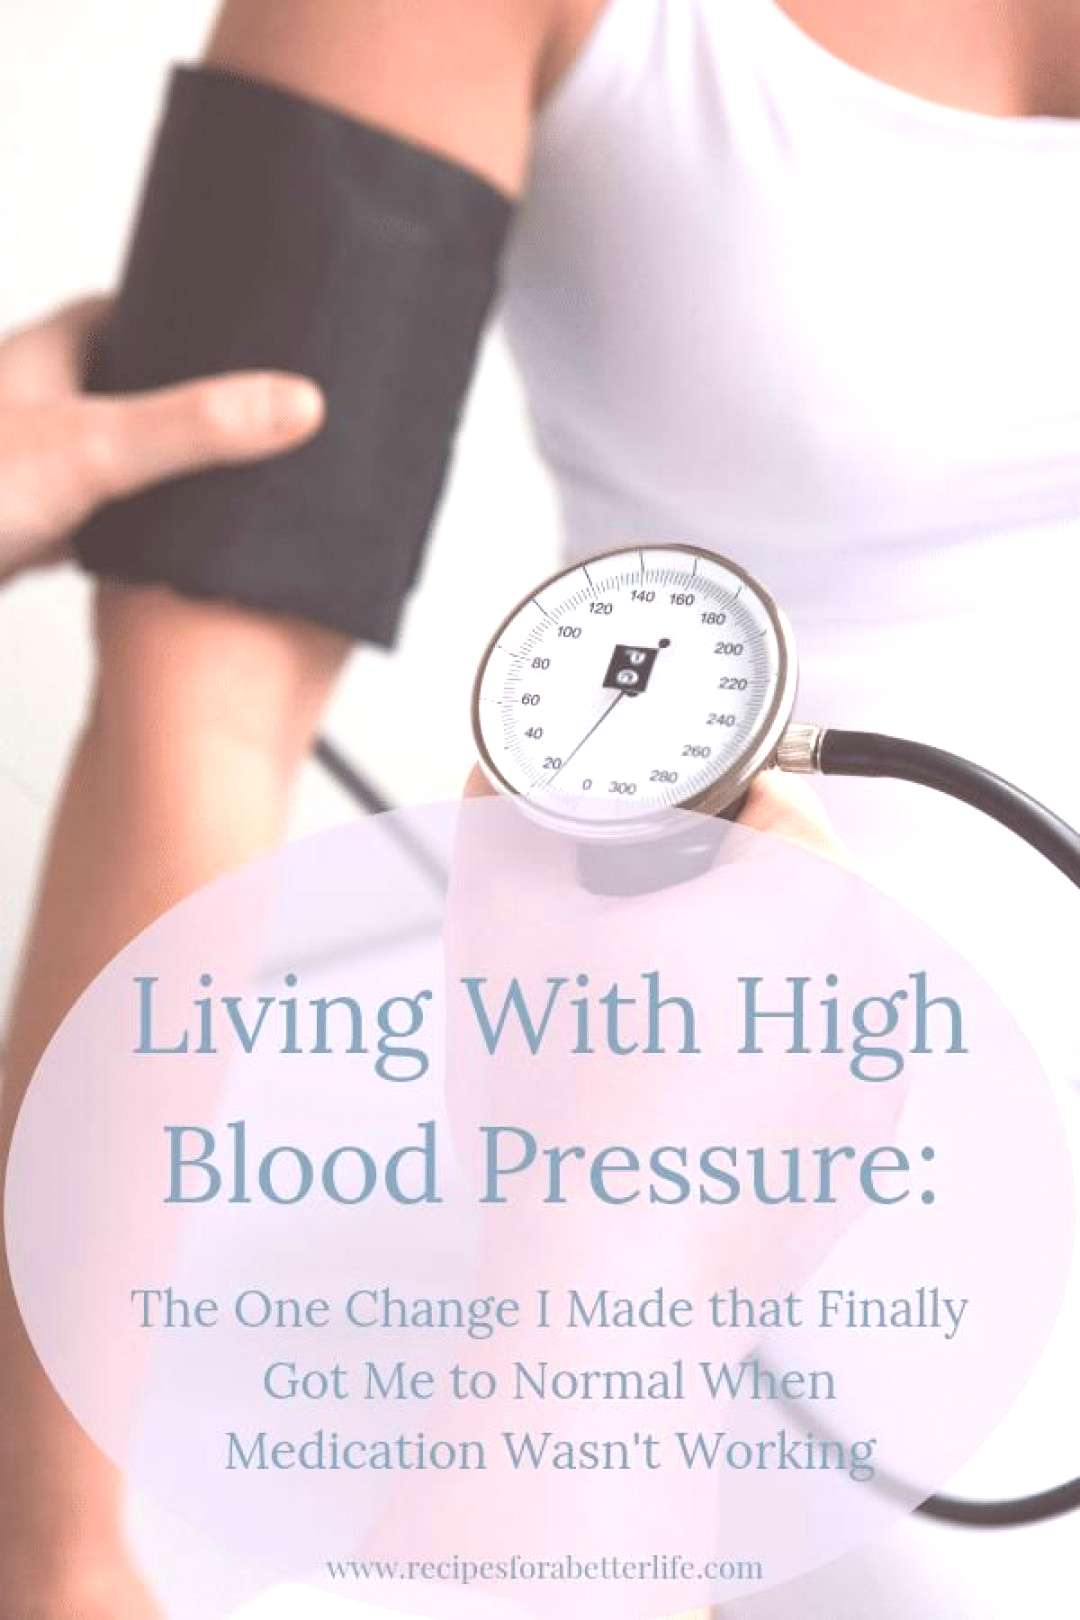 How I Lowered My Blood Pressure- I used to have really high blood pressure even with two medicatio